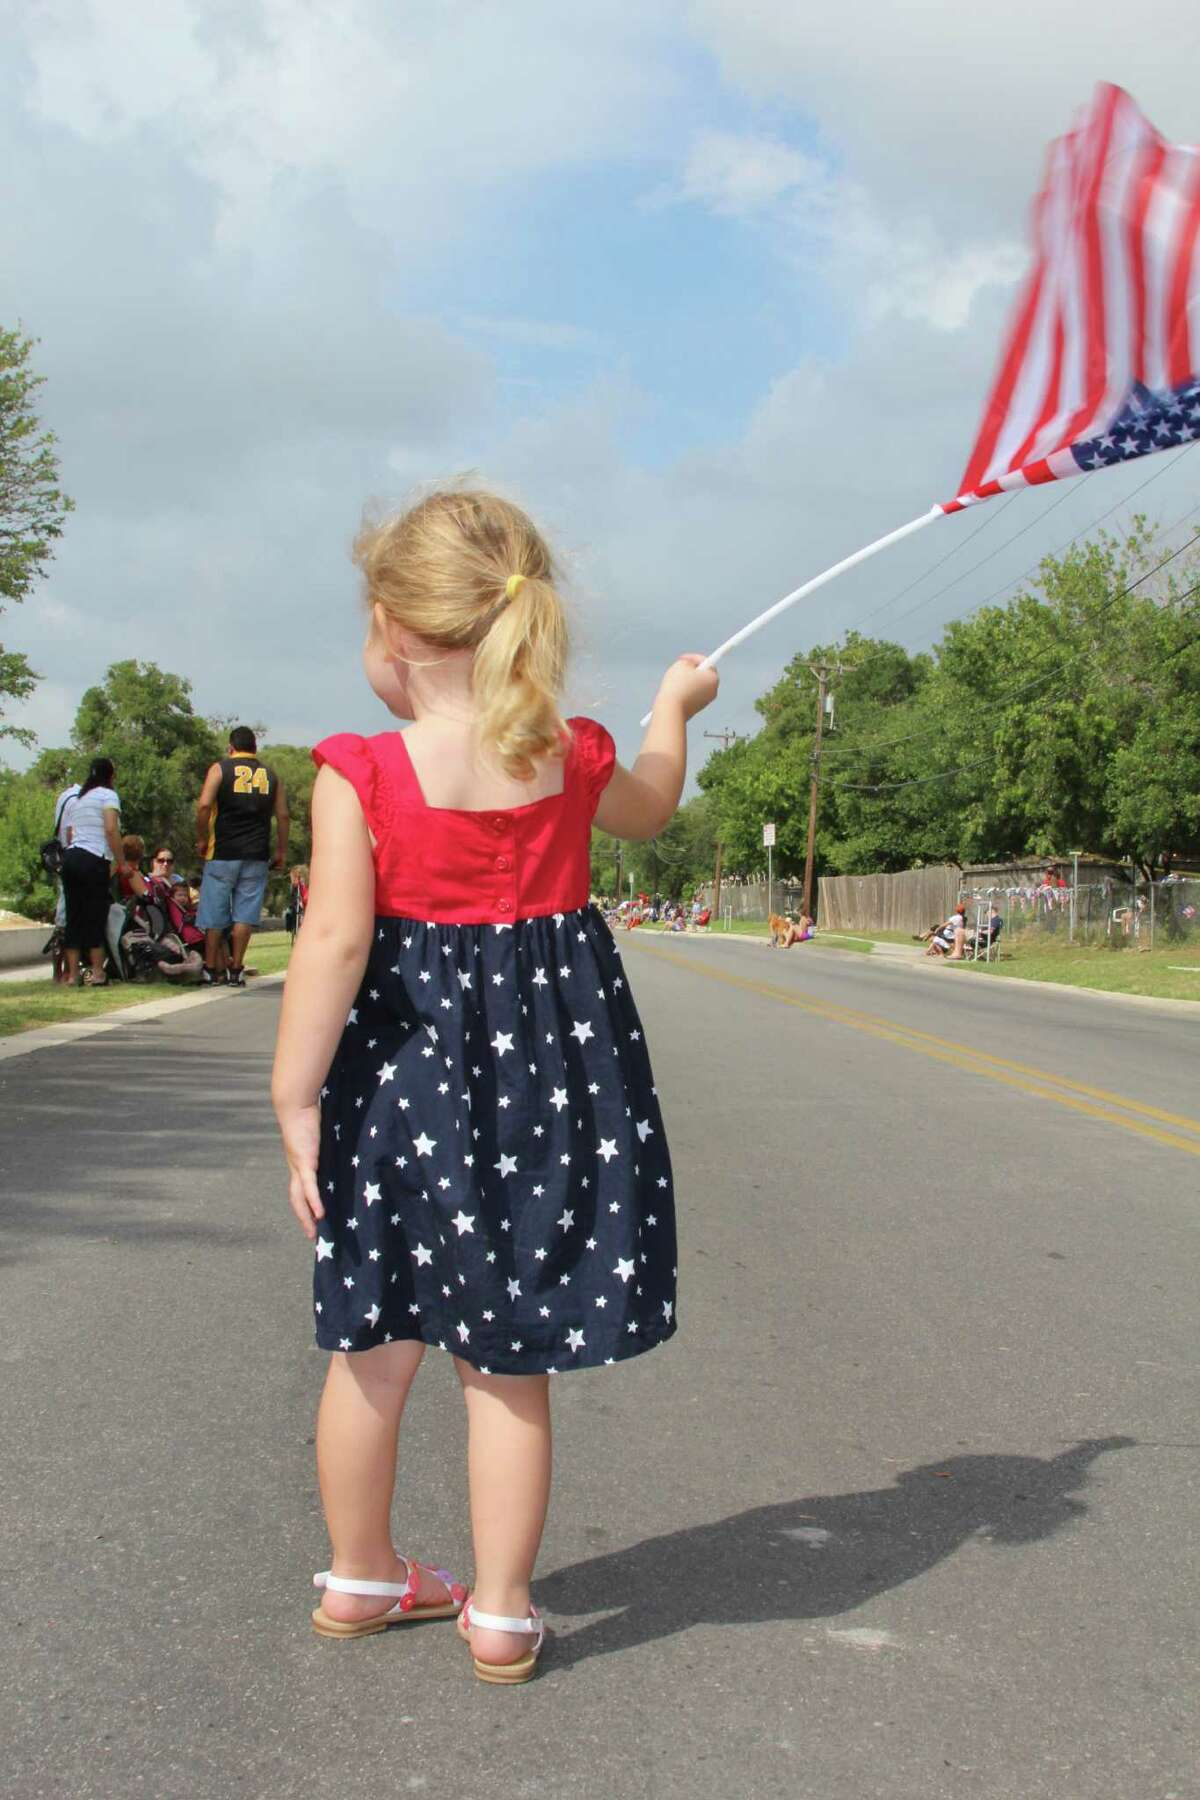 Makenzie Plagge, 2, waves her flag in anticipating of the coming parade July 4 on Poss Road in Leon Valley.